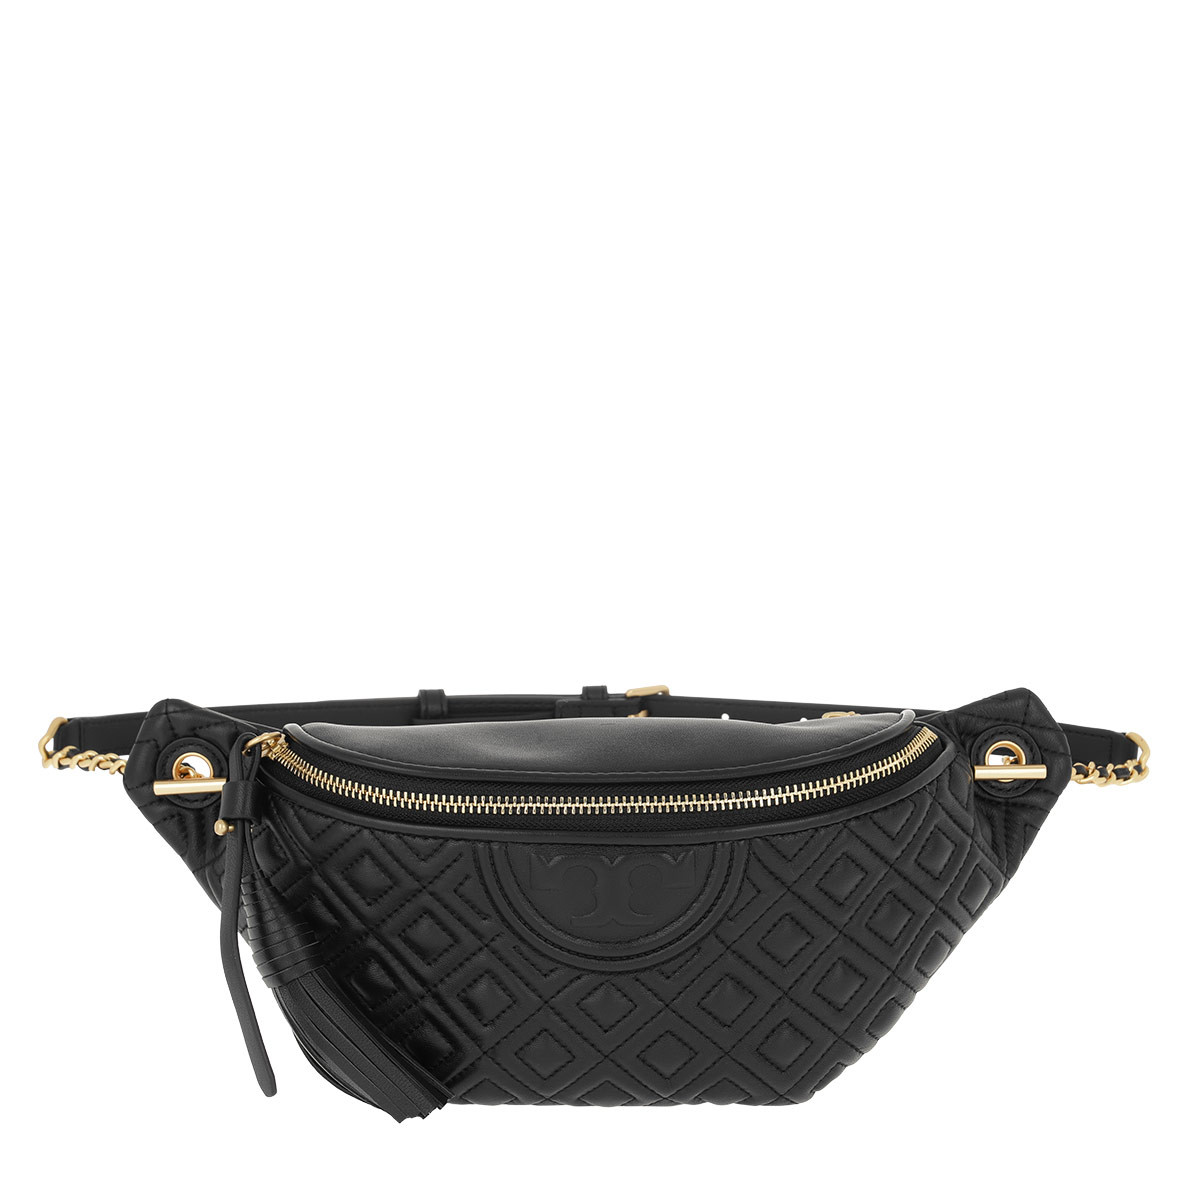 Tory Burch Gürteltasche - Fleming Belt Bag Black - in schwarz - für Damen